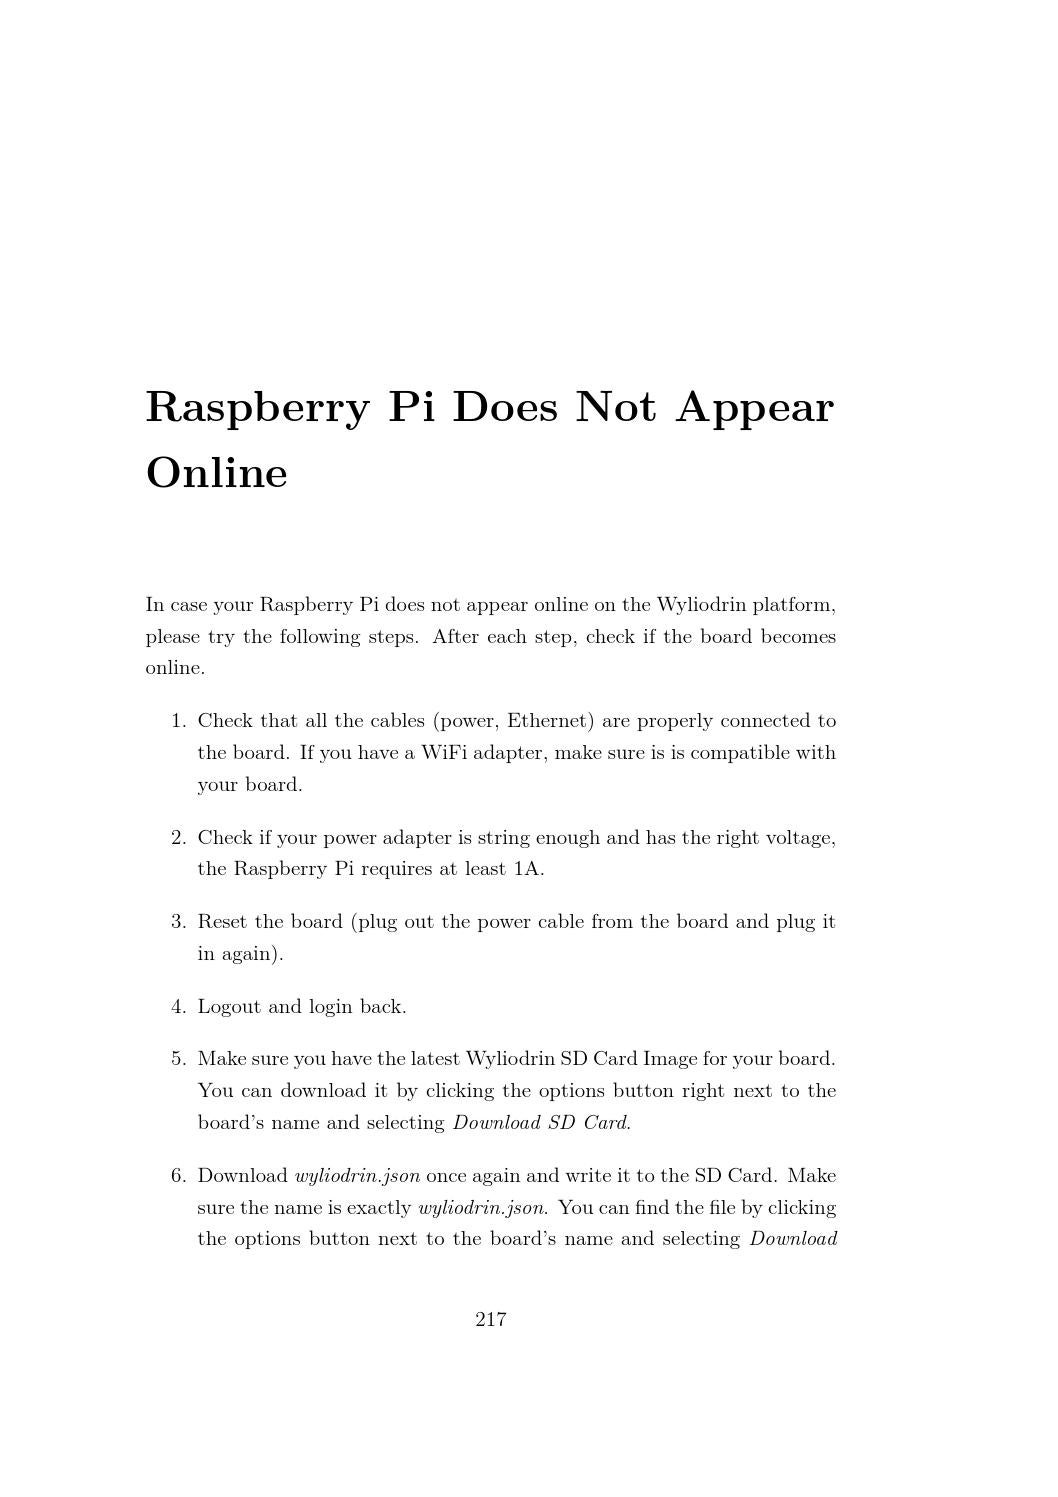 Getting started guide for Raspberry Pi and Arduino using